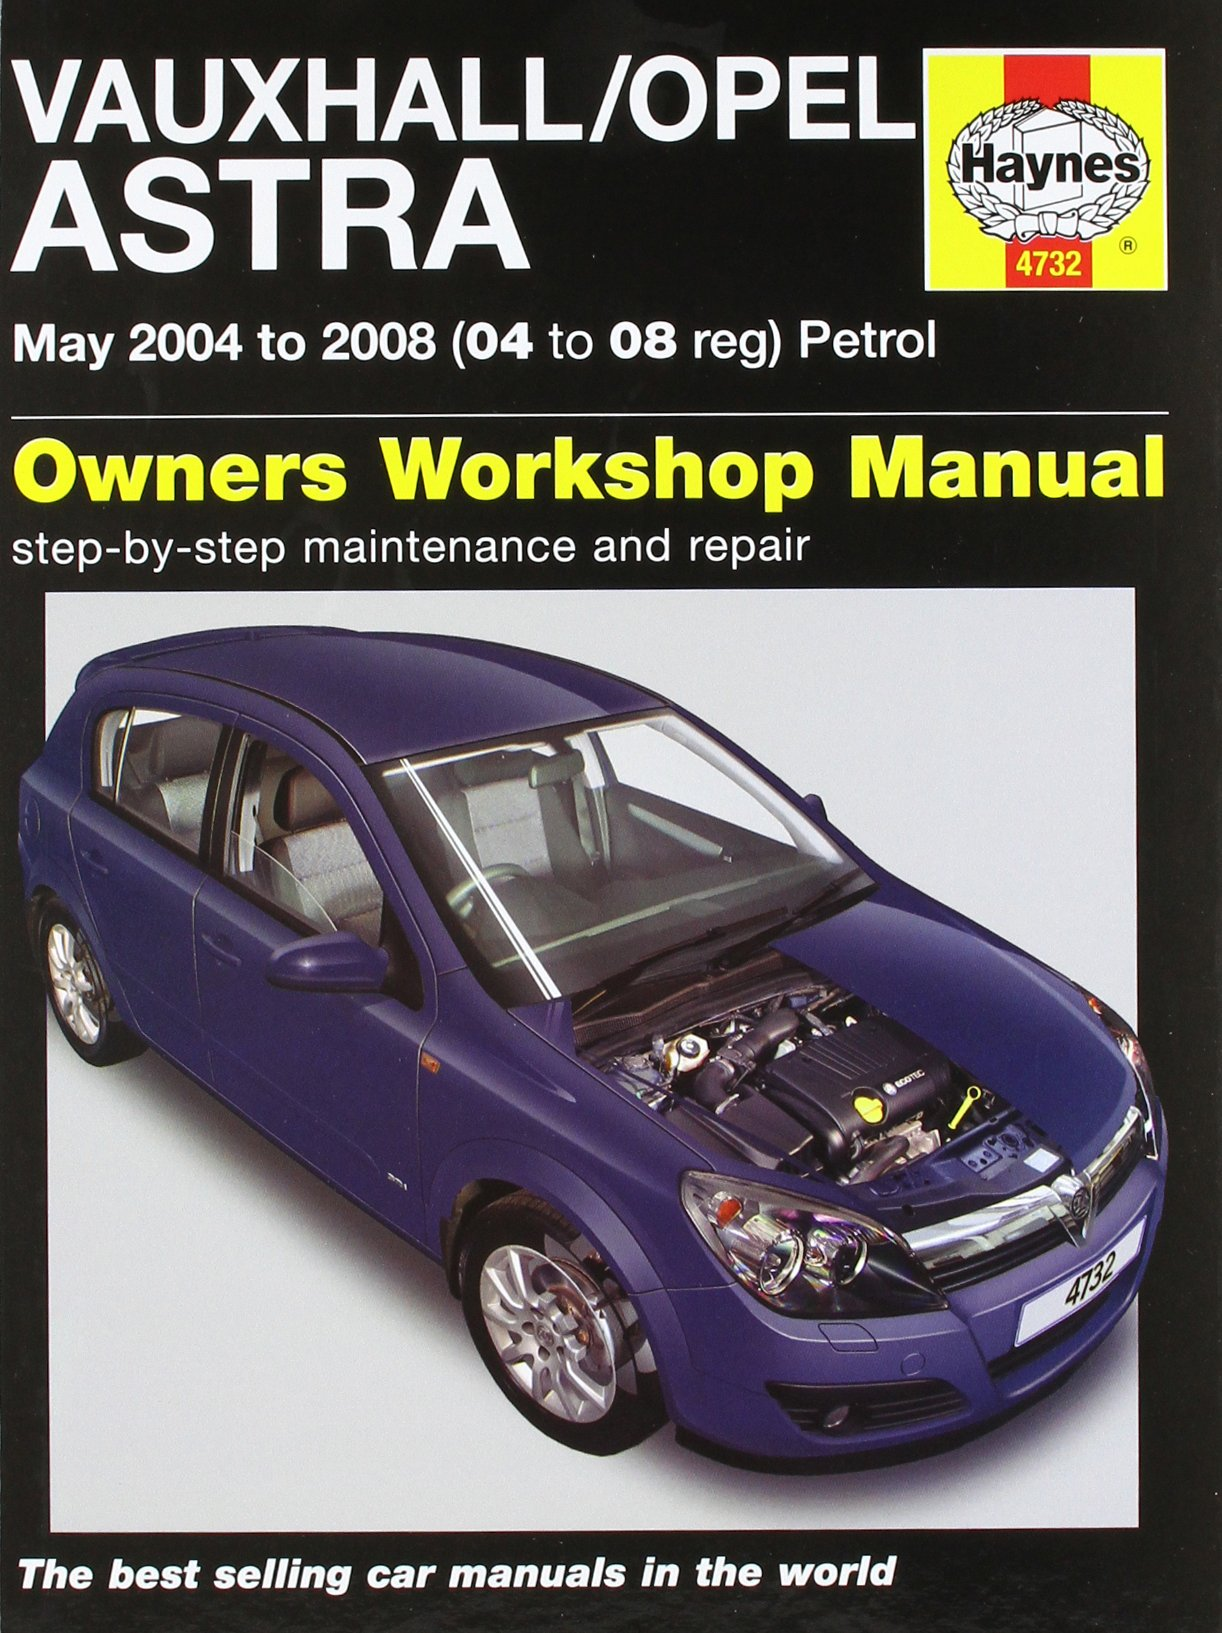 Buy Vauxhall/Opel Astra: May 2004 to 2008 (04 to 08 Reg) Petrol (Owners  Workshop Manual) Book Online at Low Prices in India | Vauxhall/Opel Astra:  May 2004 ...